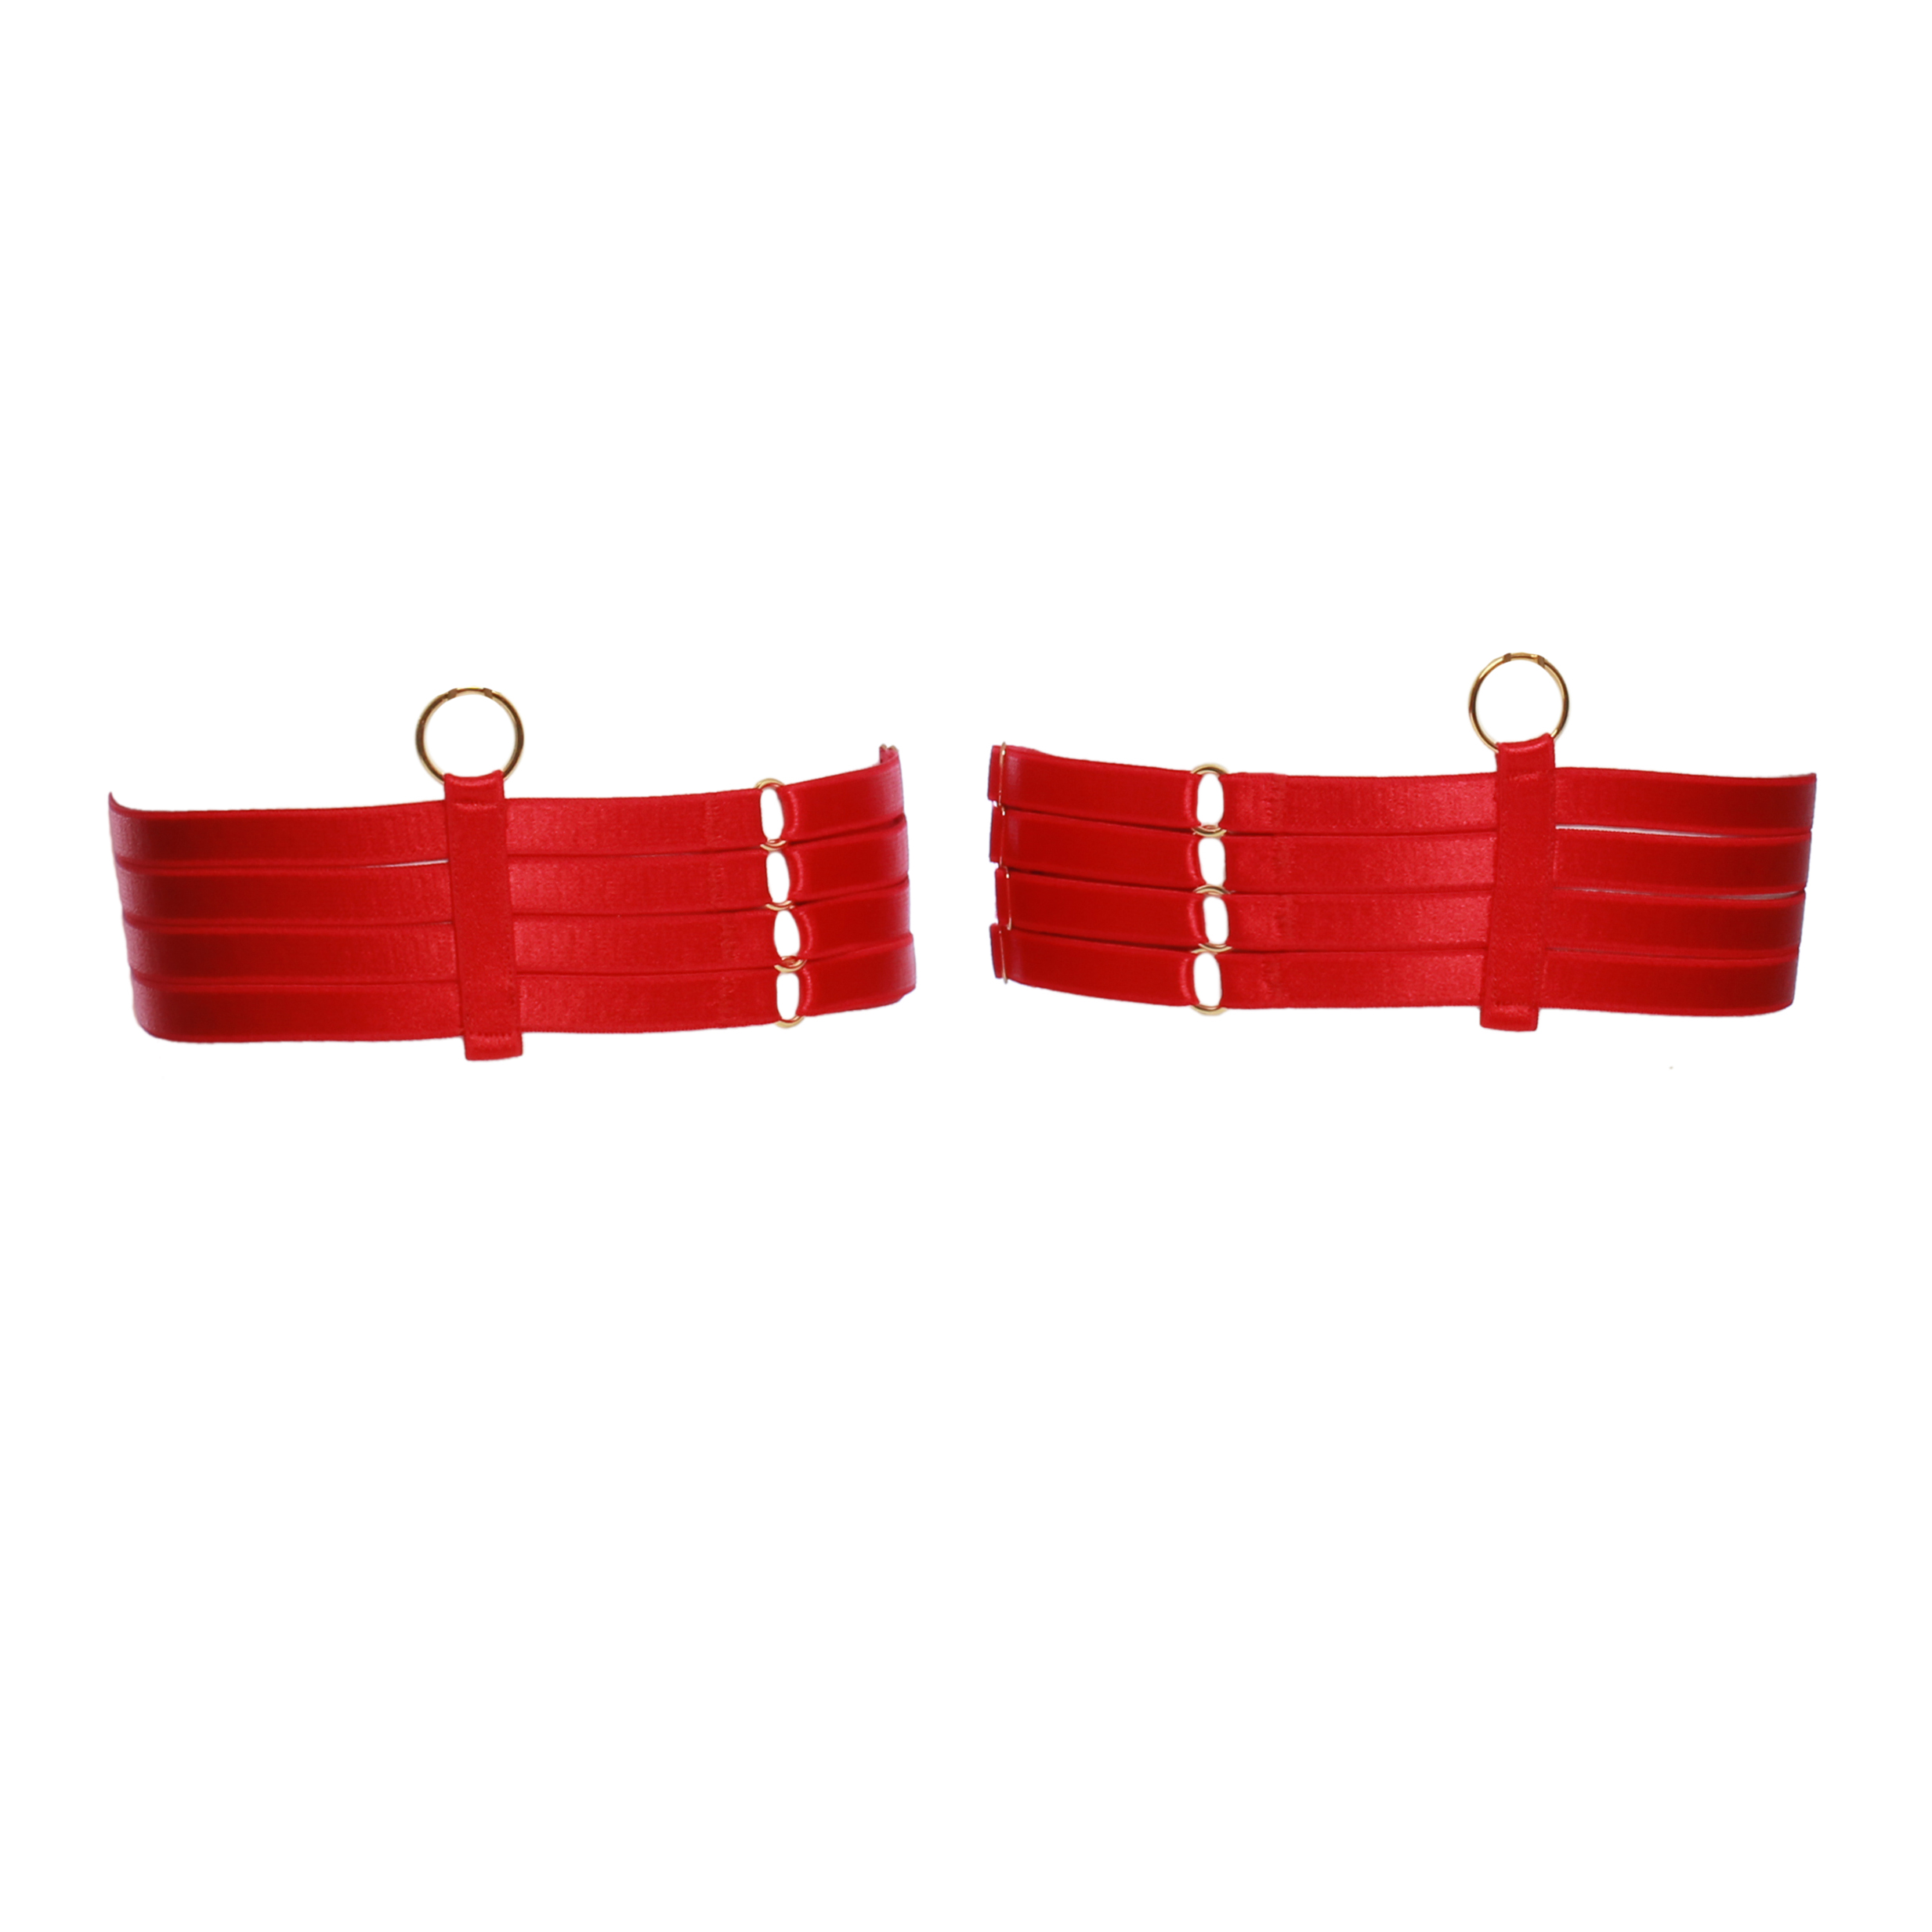 Four Strap Bondage Leg Garters in Red